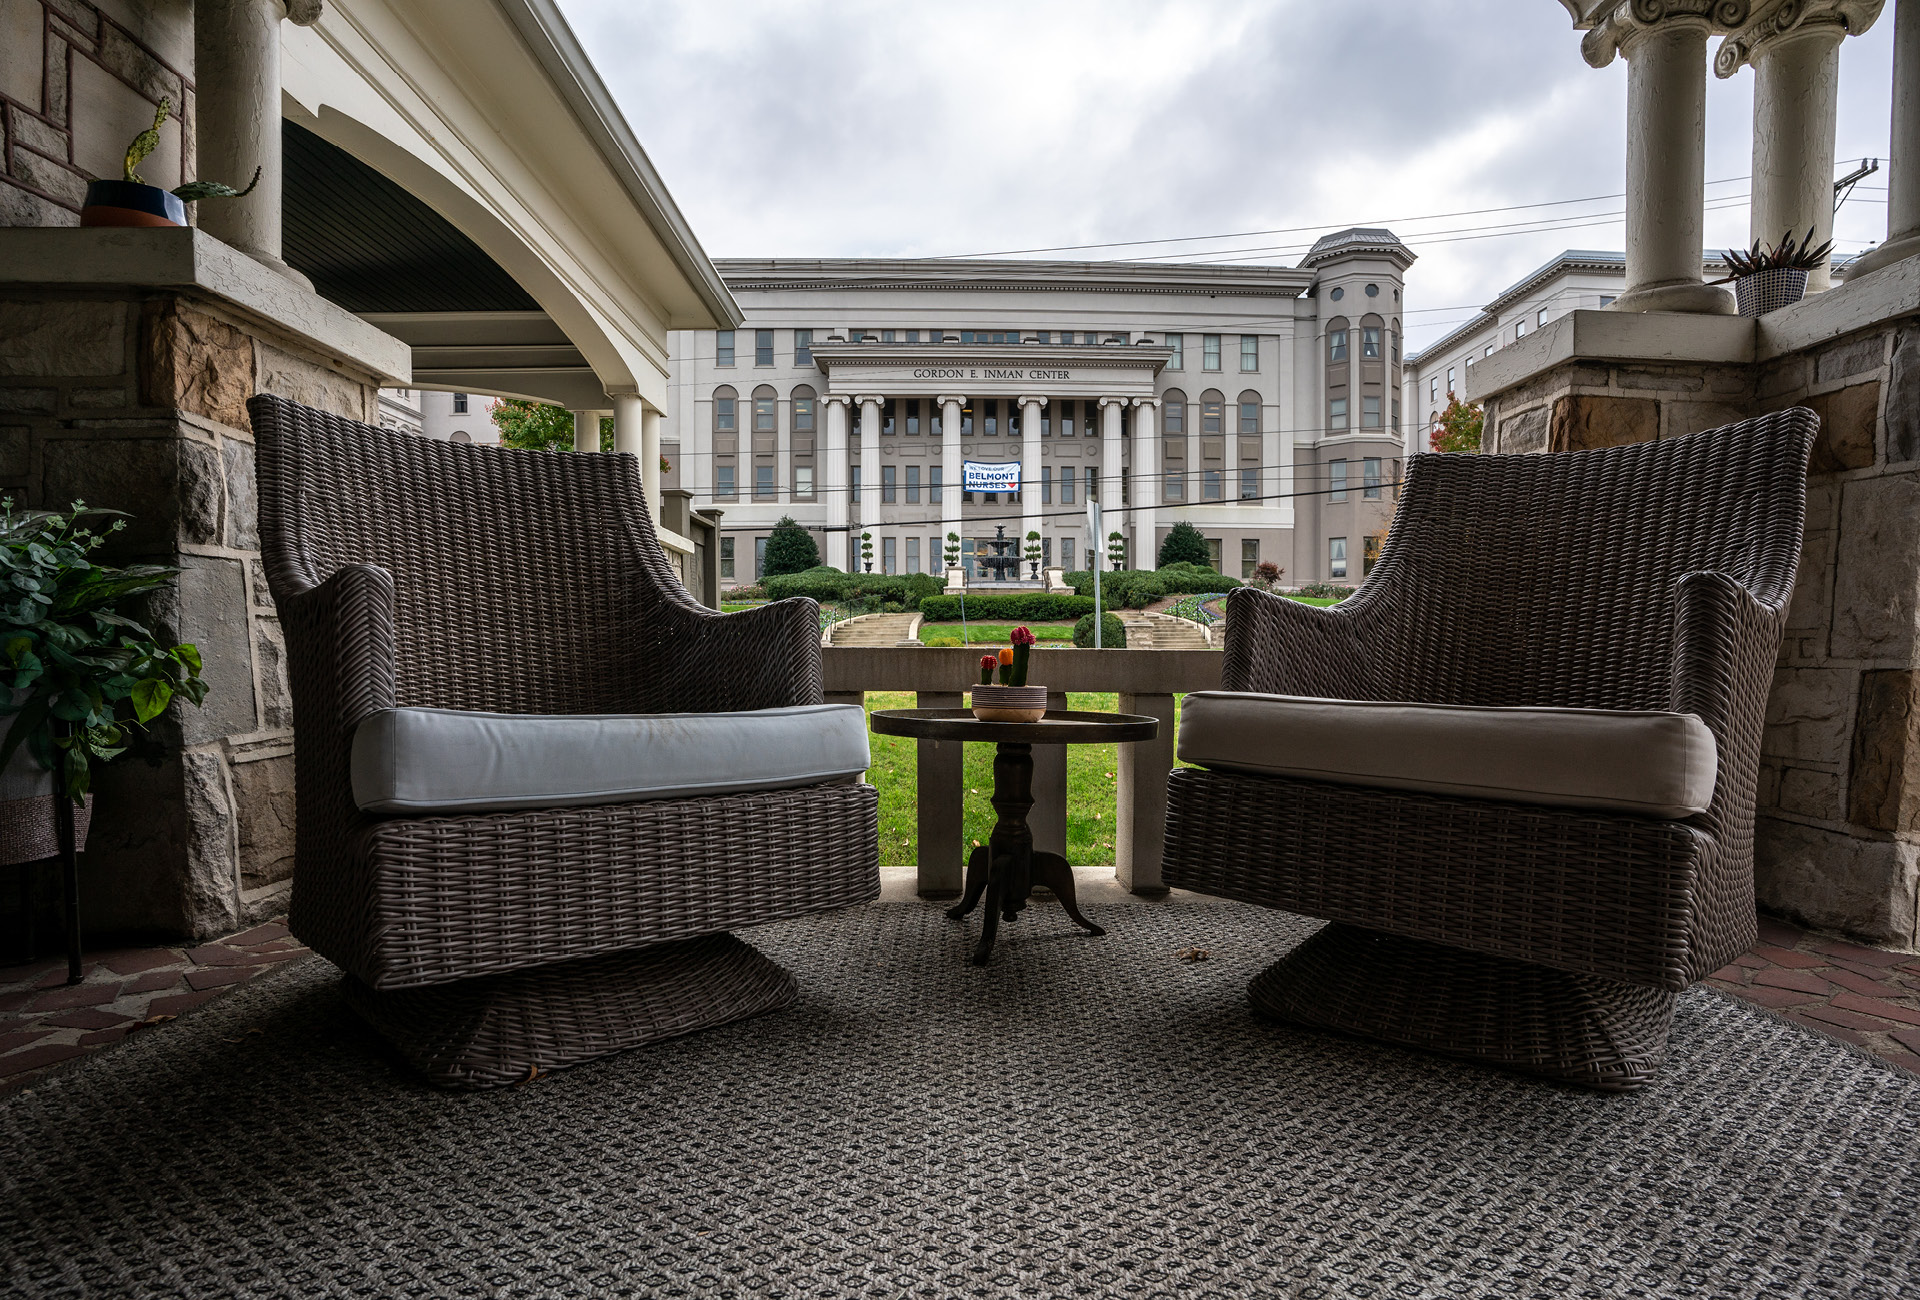 A cozy front porch with two chairs and Belmont University in the background